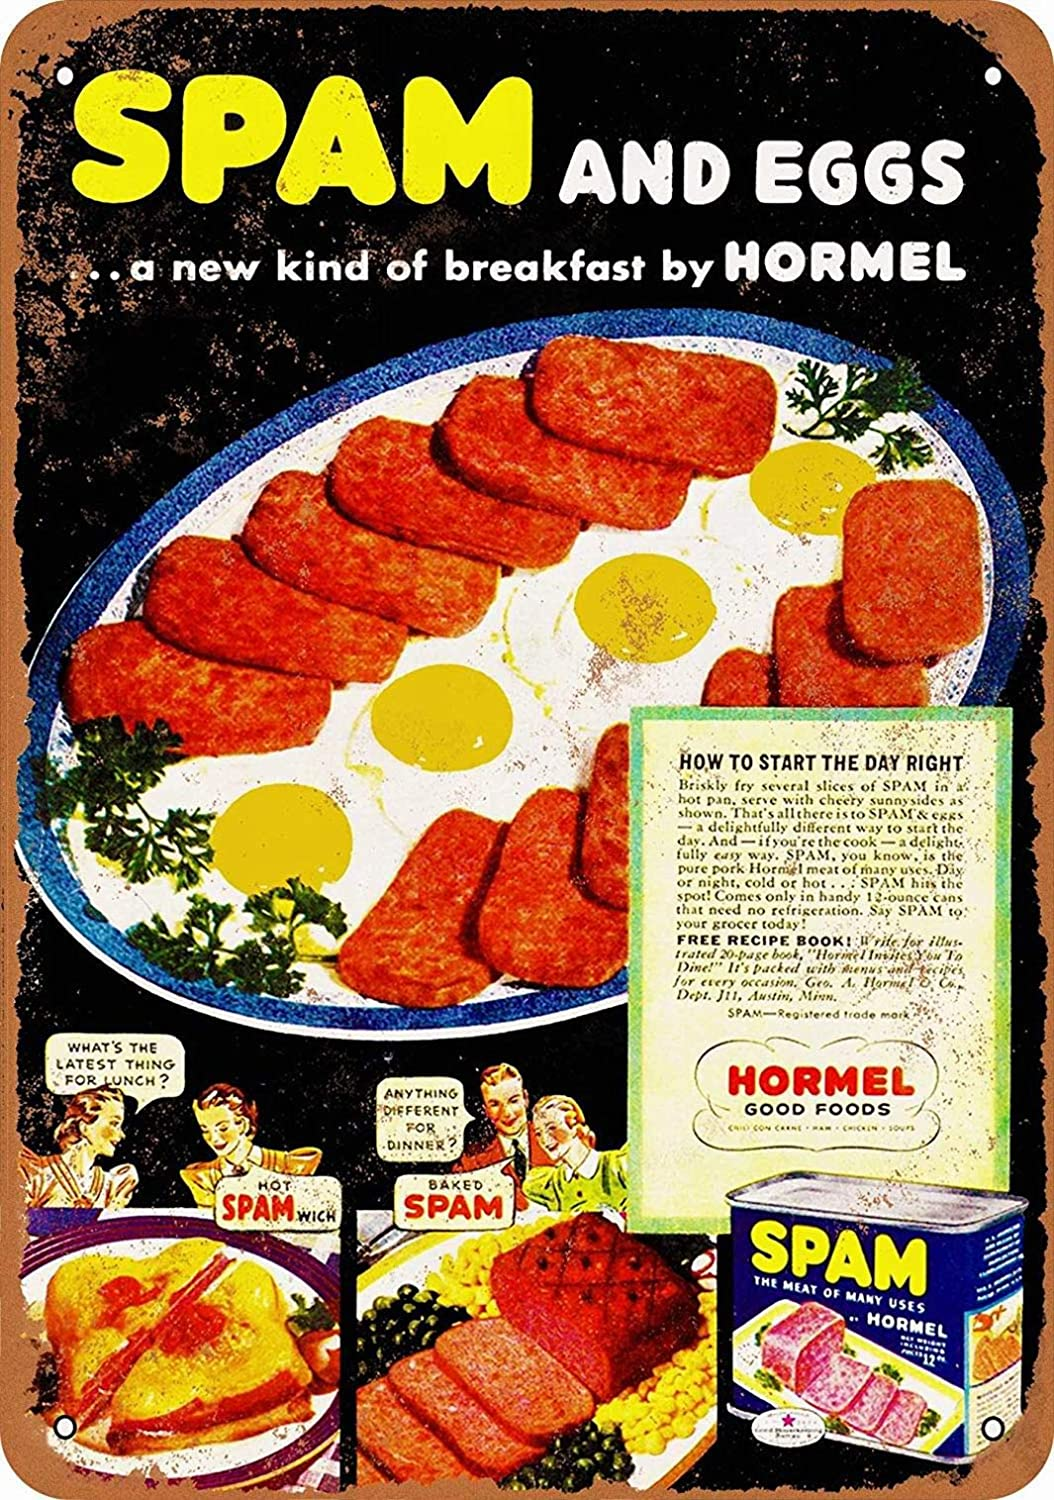 LoMall 8 x 12 Metal Sign - Hormel Spam Eggs - Vintage Wall Decor